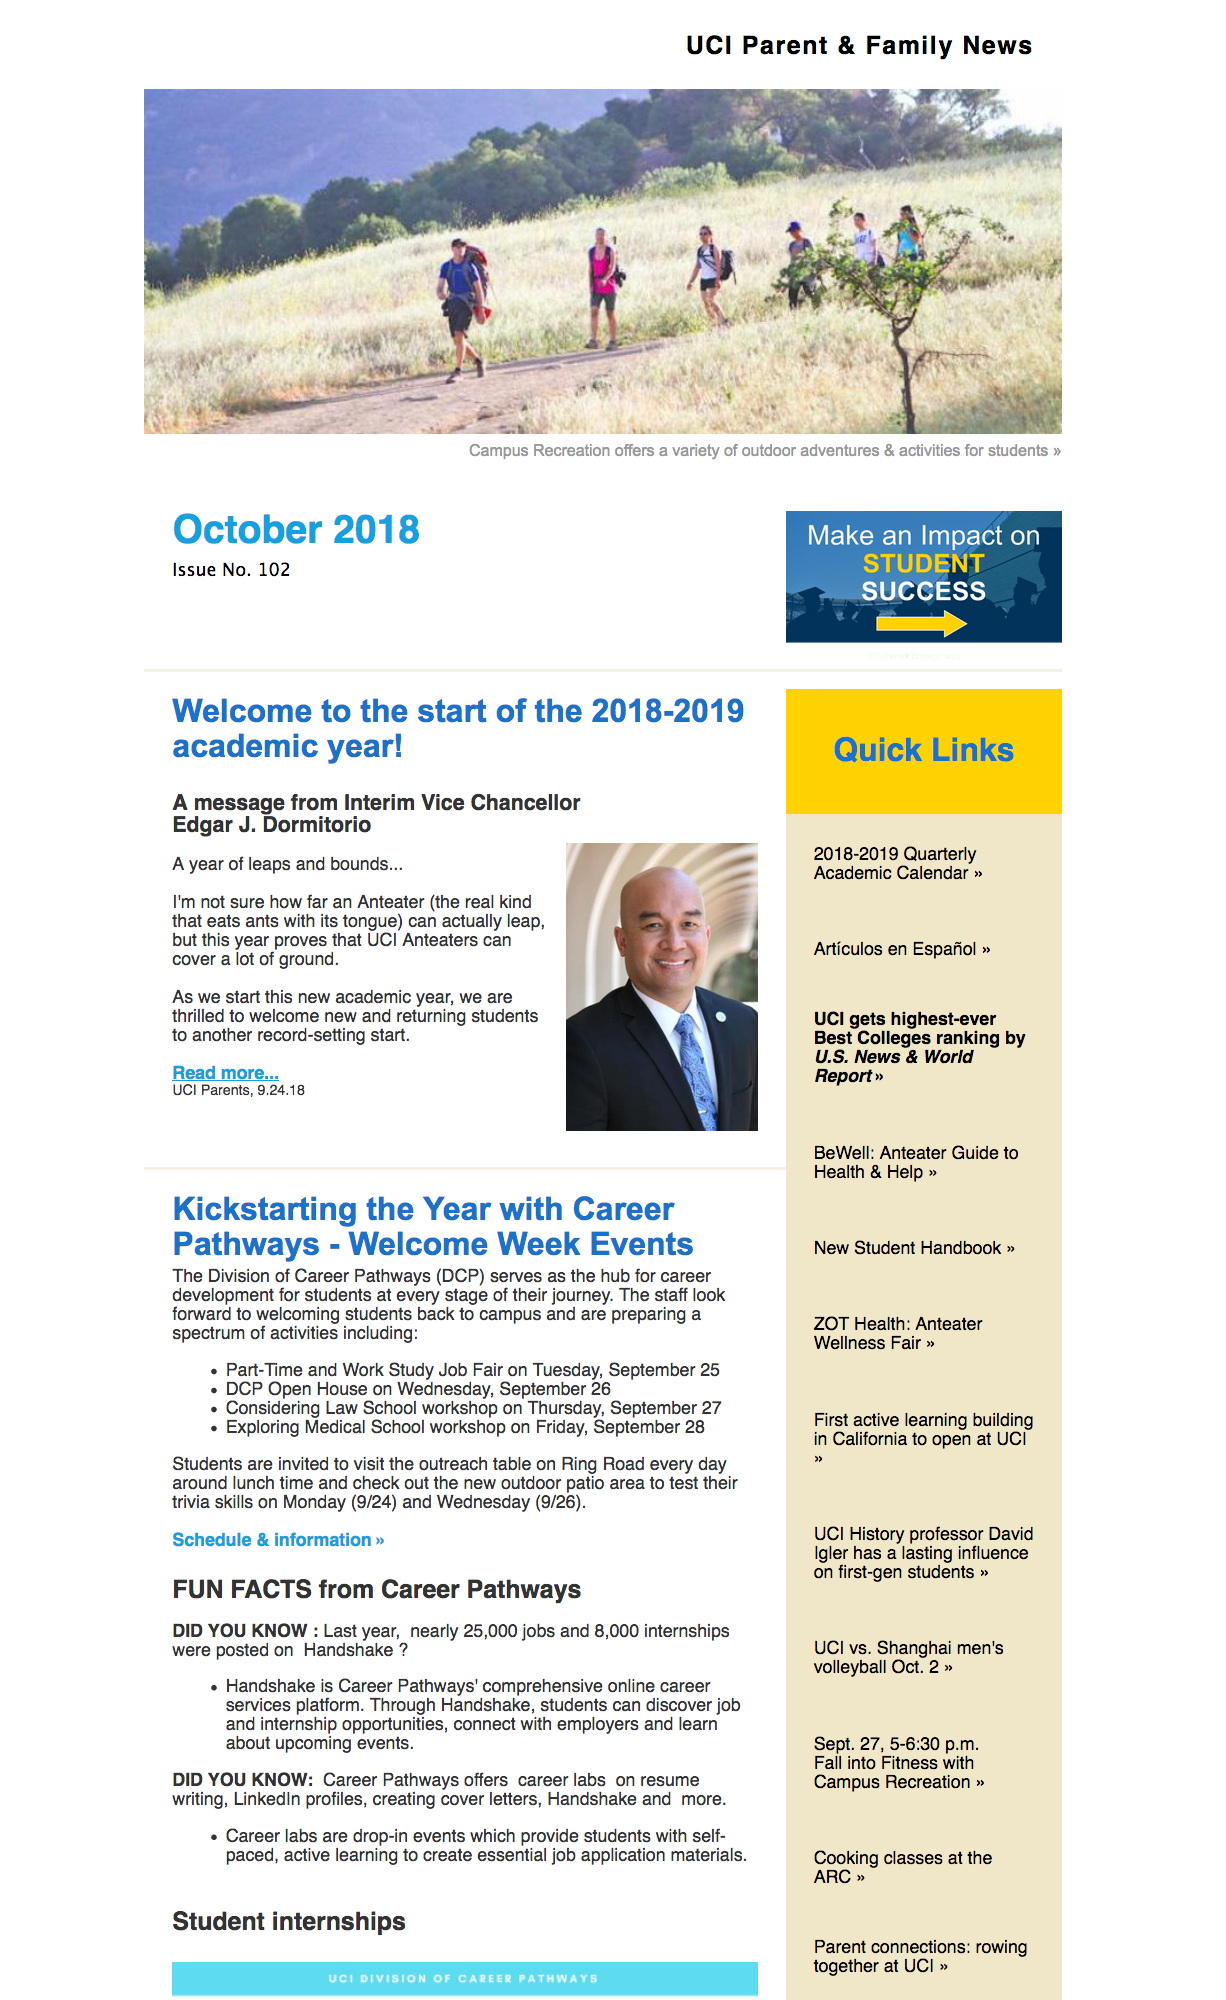 October 2018 eNews